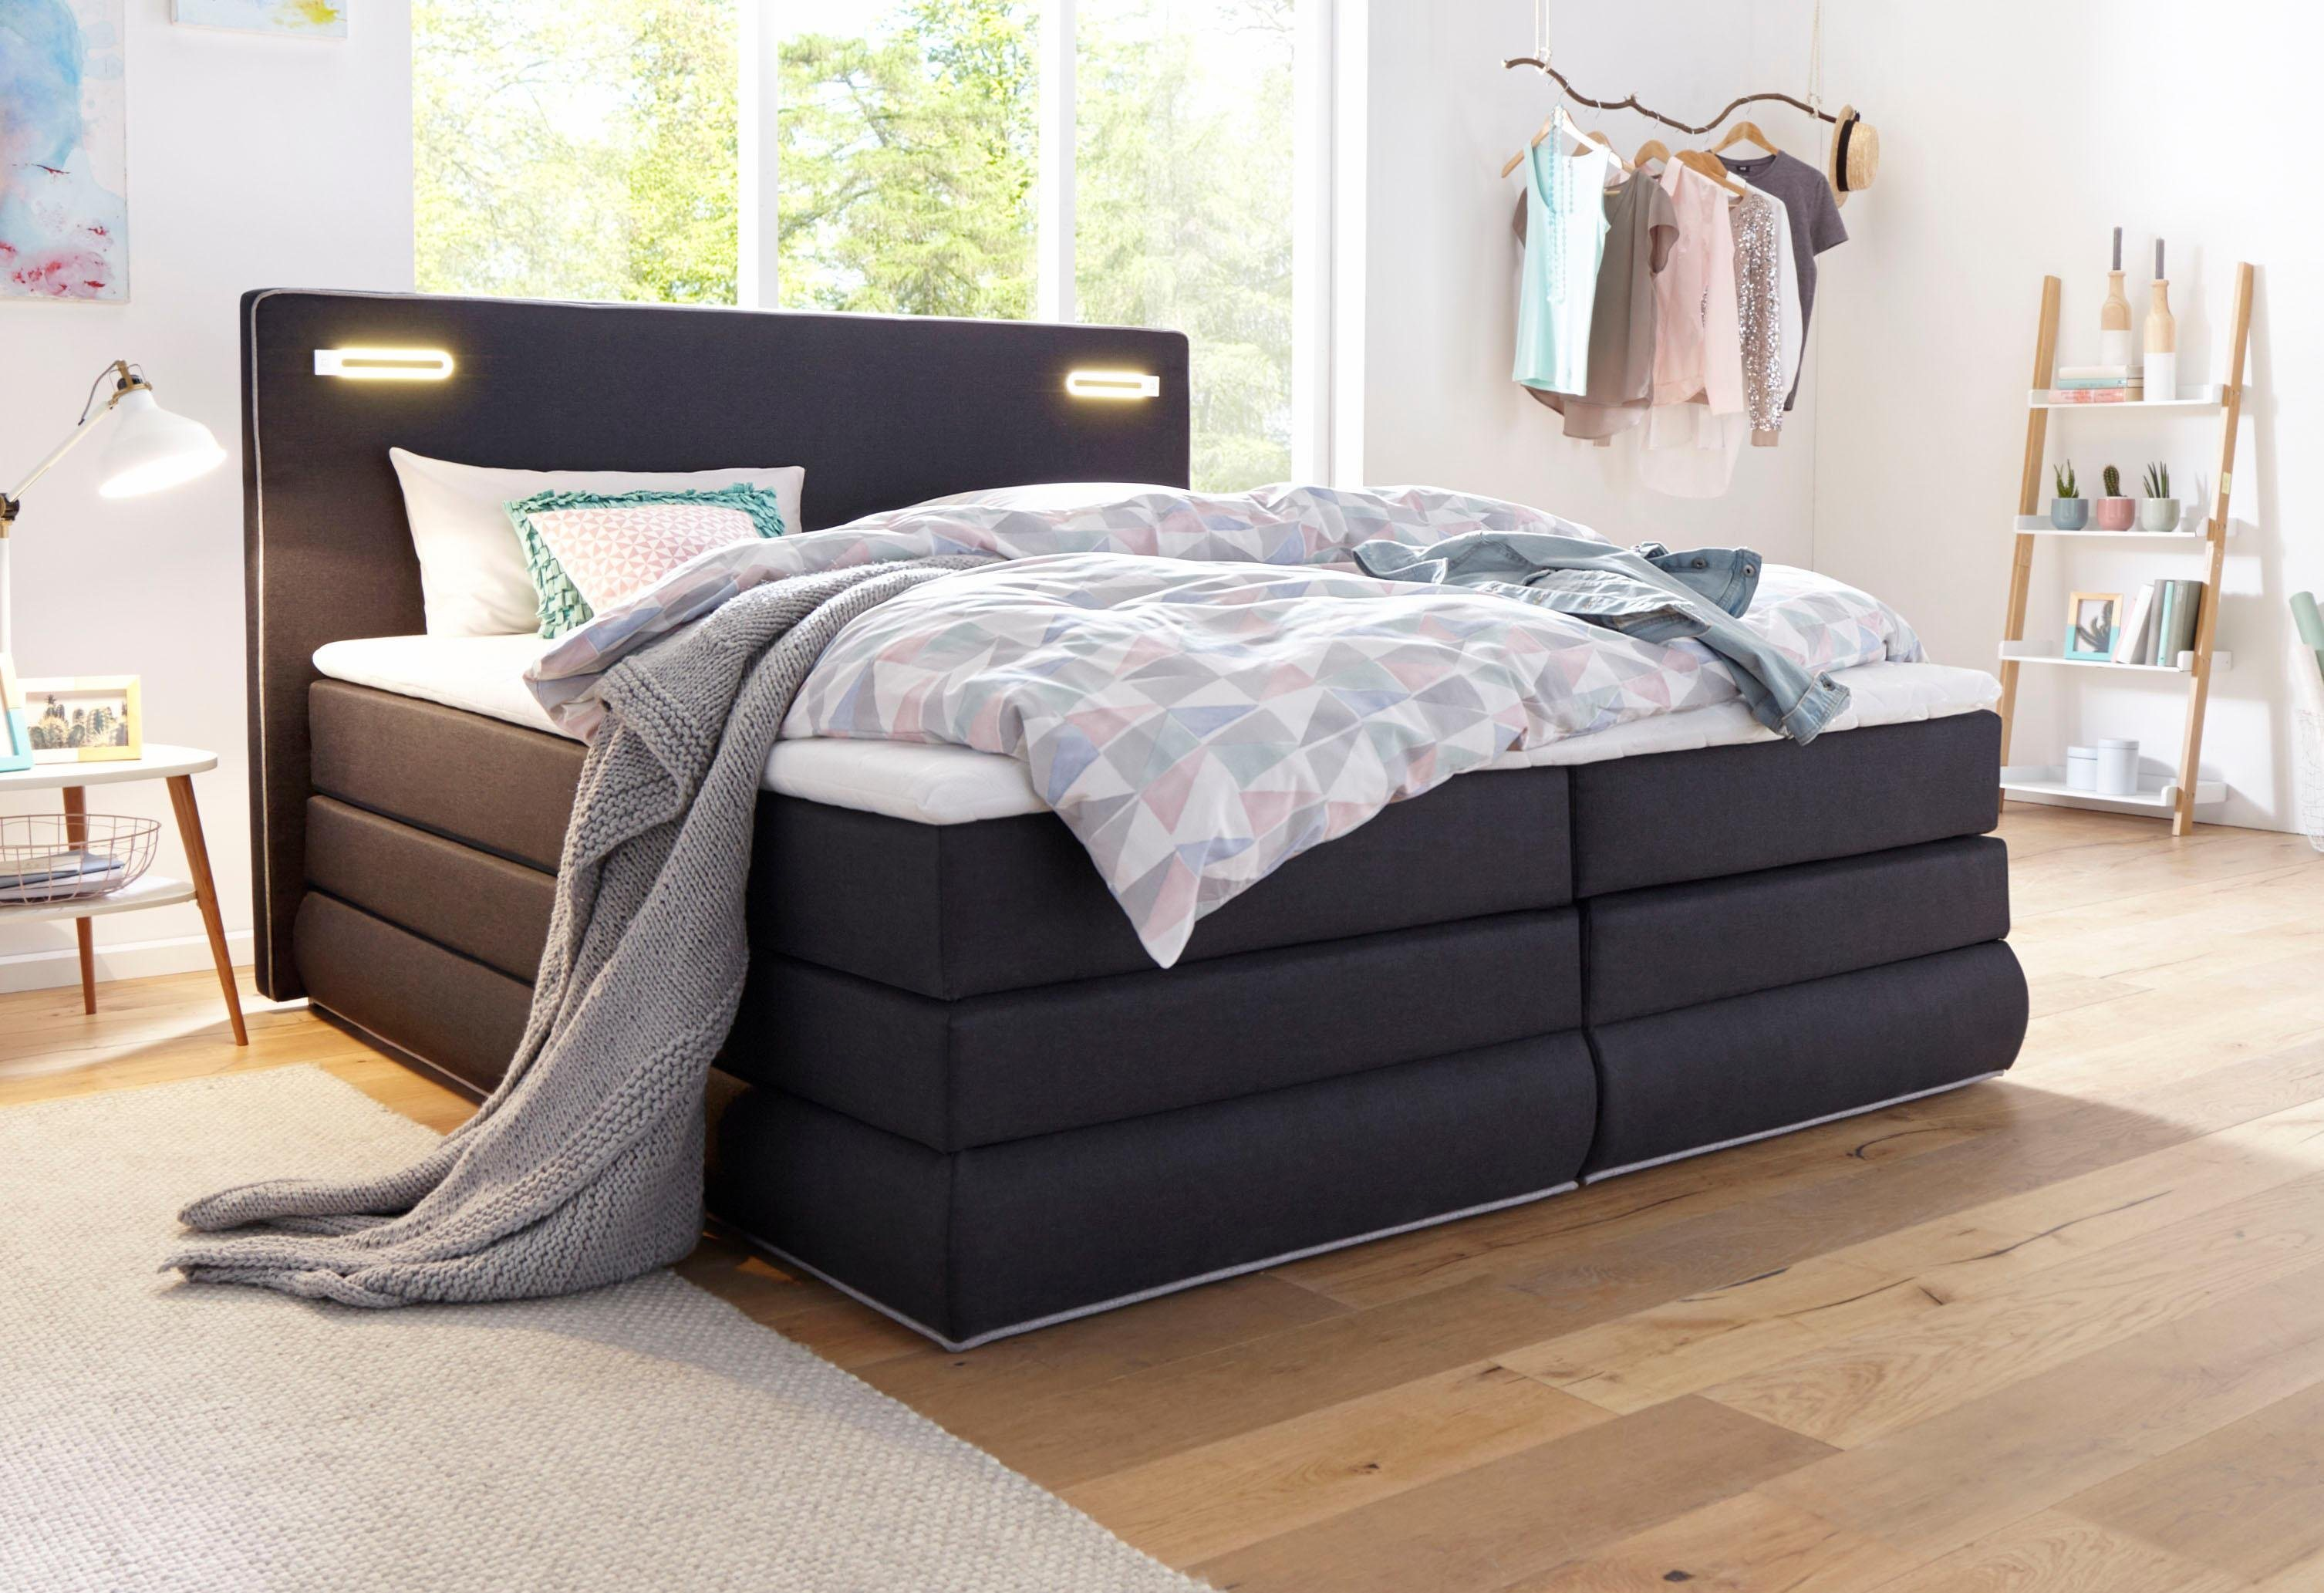 boxspringbetten im angebot 60 sparen boxspringbetten im. Black Bedroom Furniture Sets. Home Design Ideas